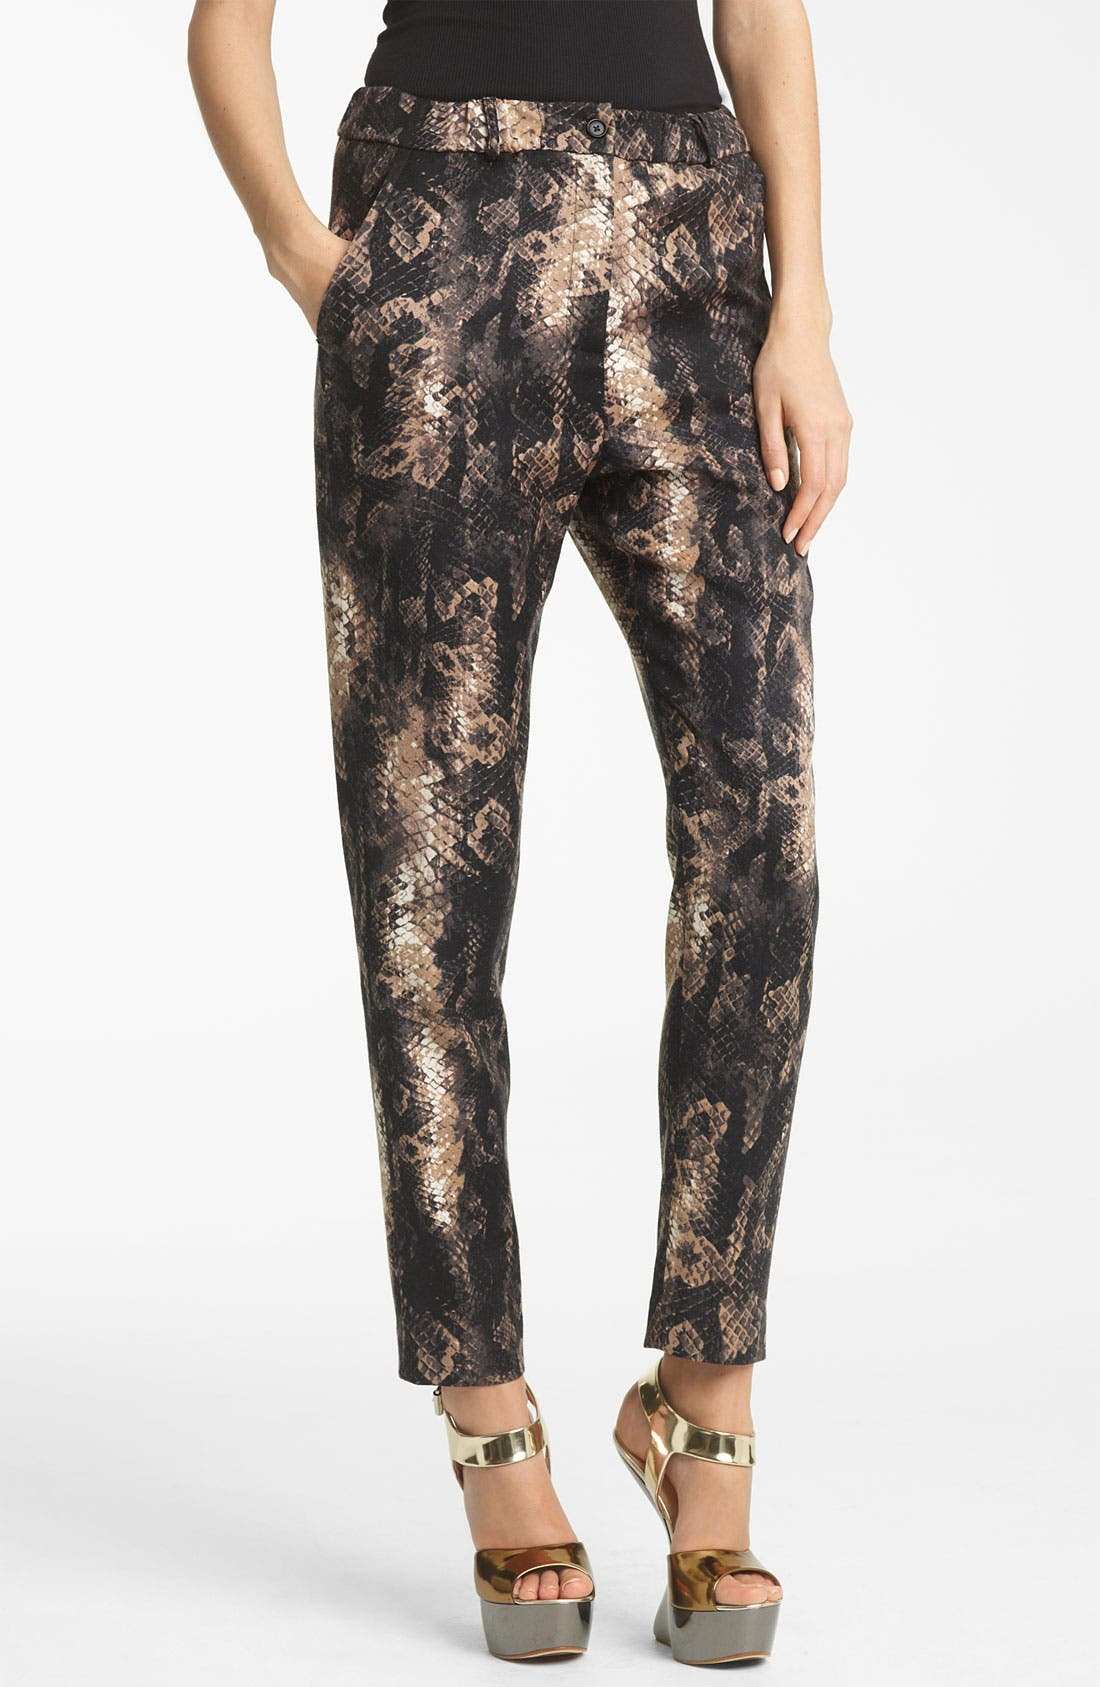 Main Image - Yigal Azrouël Python Print Stretch Wool Pants